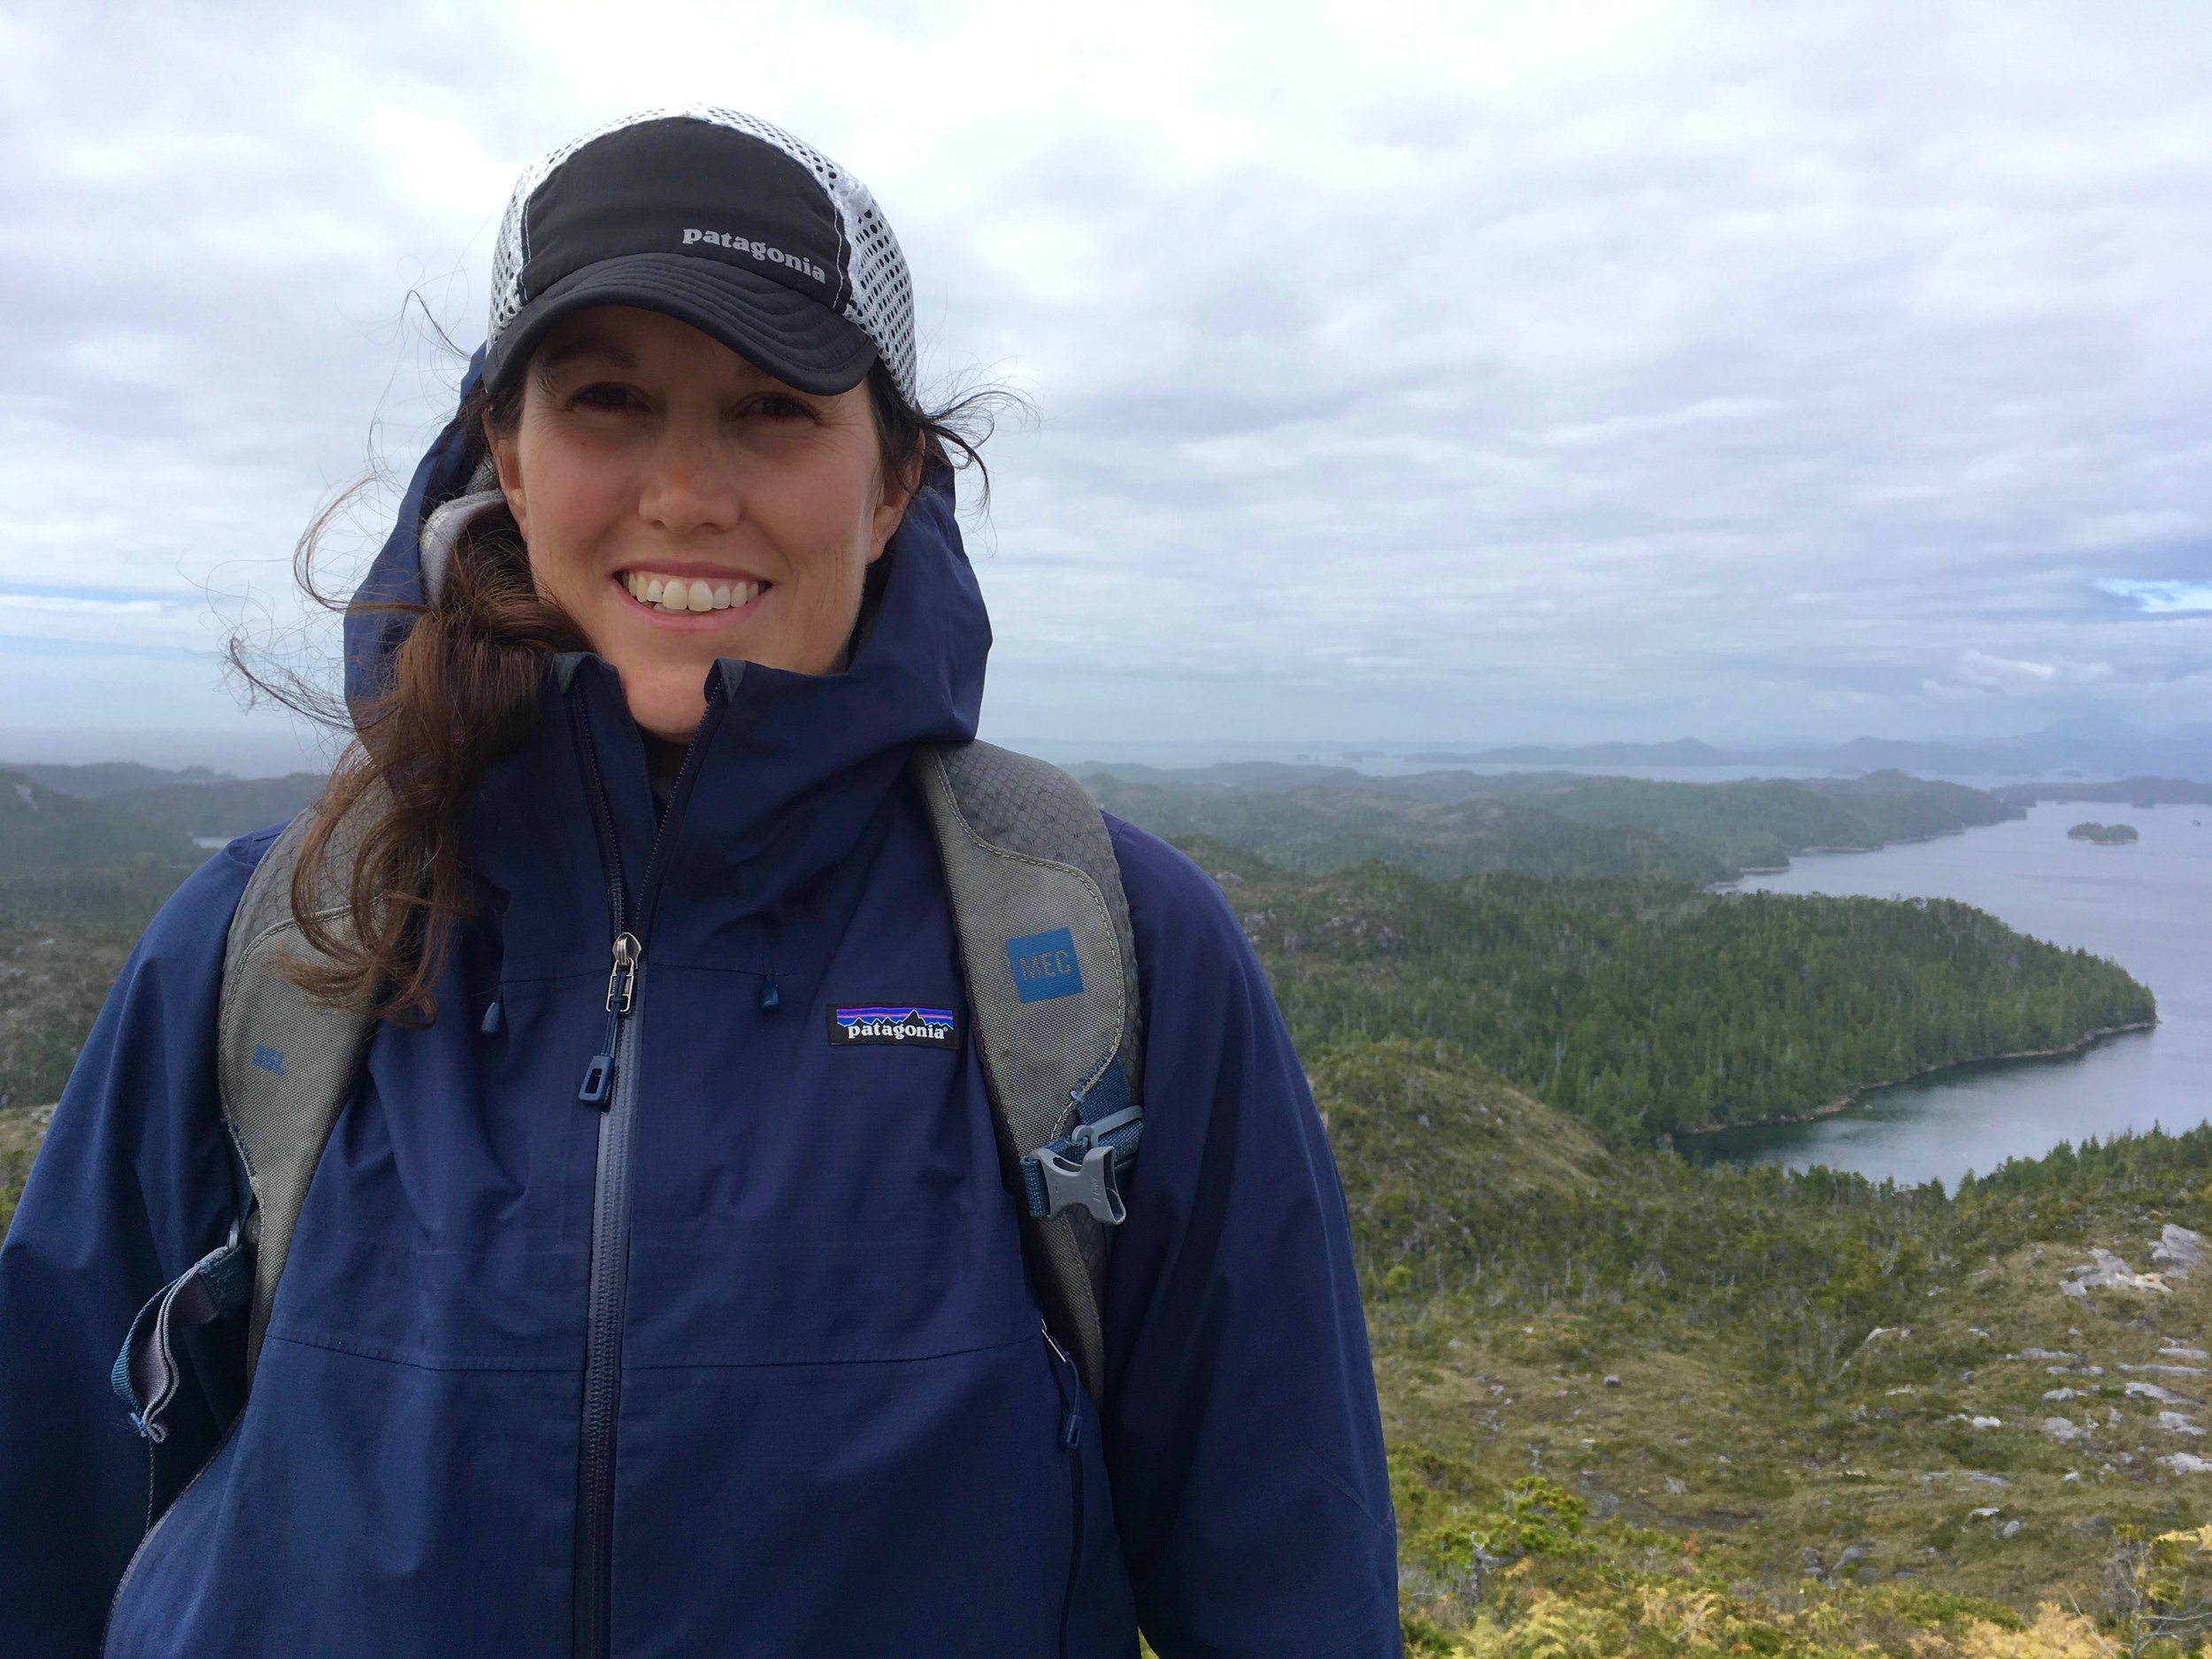 Sara Wickham - PhD CandidateSara's dissertation looks at understanding plant biodiversity across BC by understanding the relationships between plants and people over HUGE time scales. Check out her website HERE